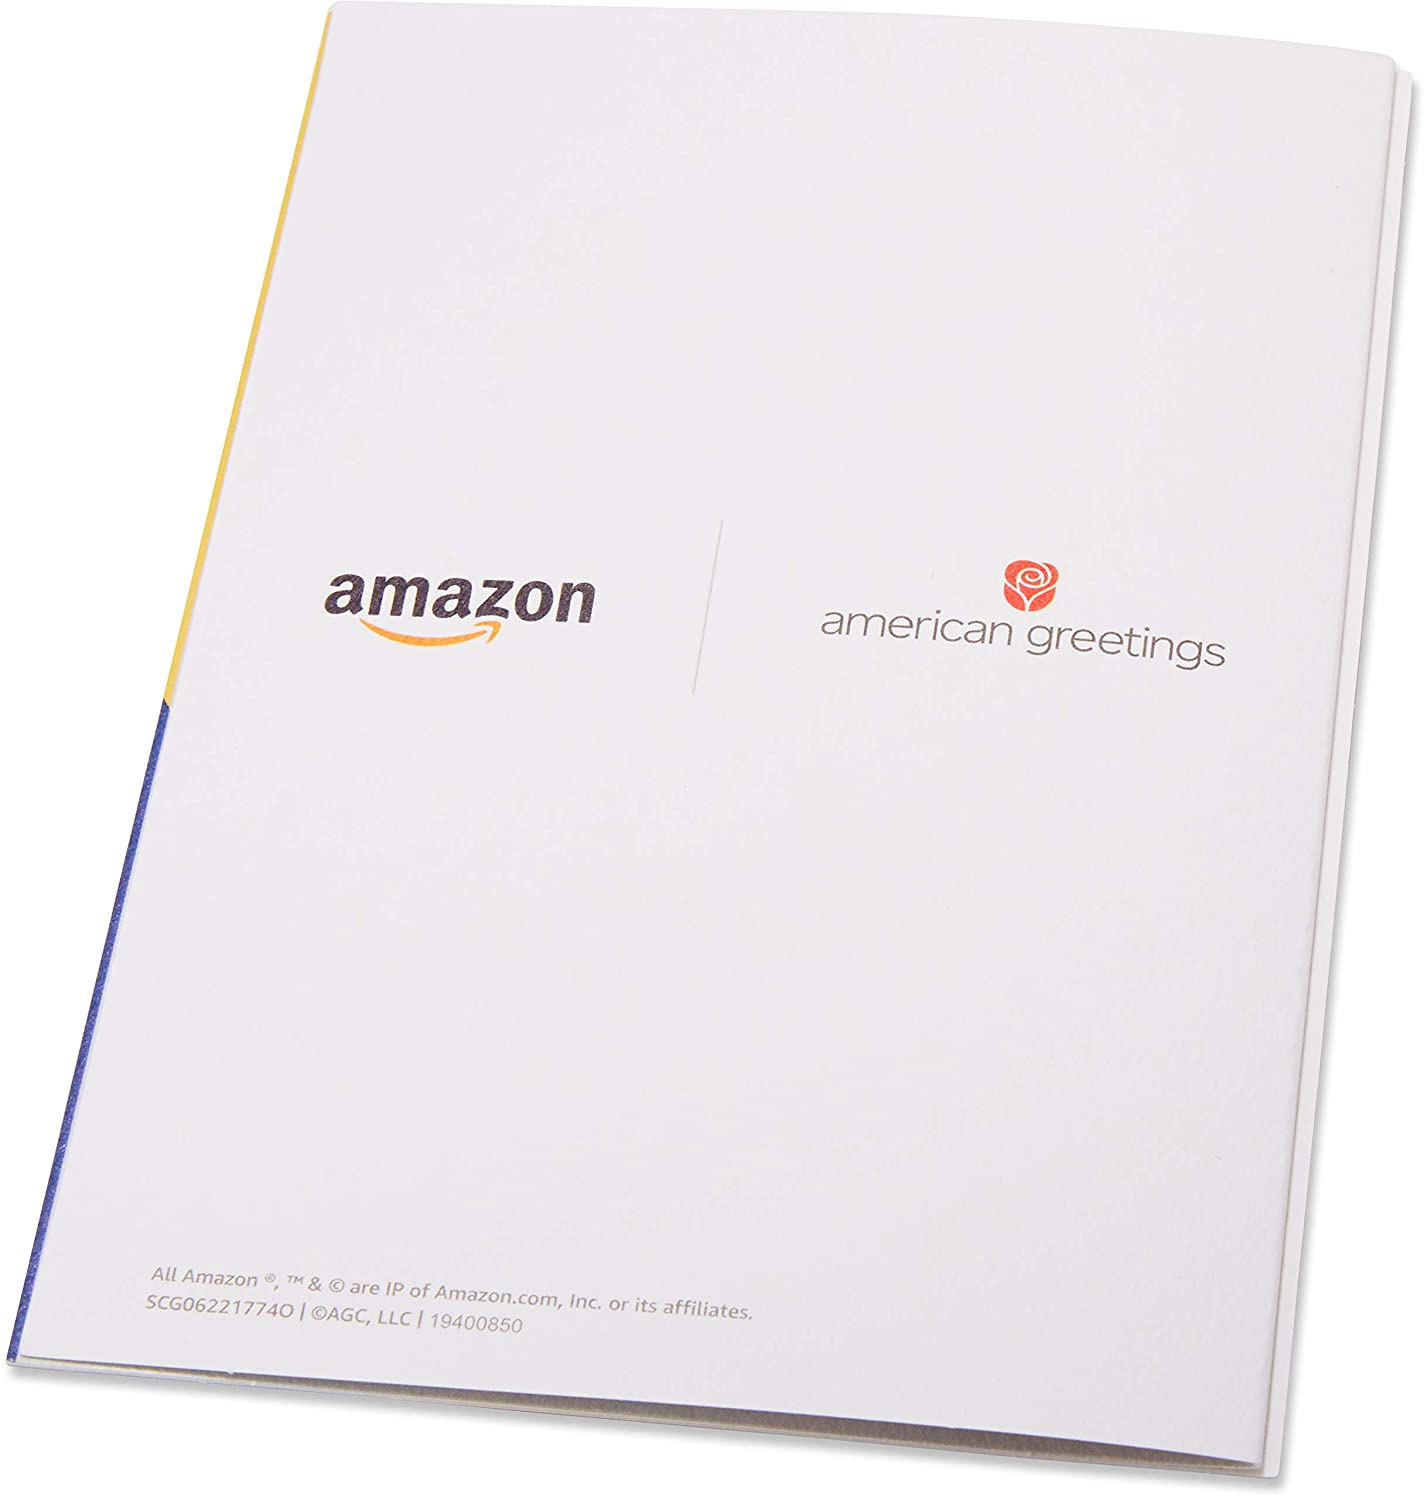 Amazon Gift Card In A Premium Greeting By American Greetings Congratulations You Did It Design Cards